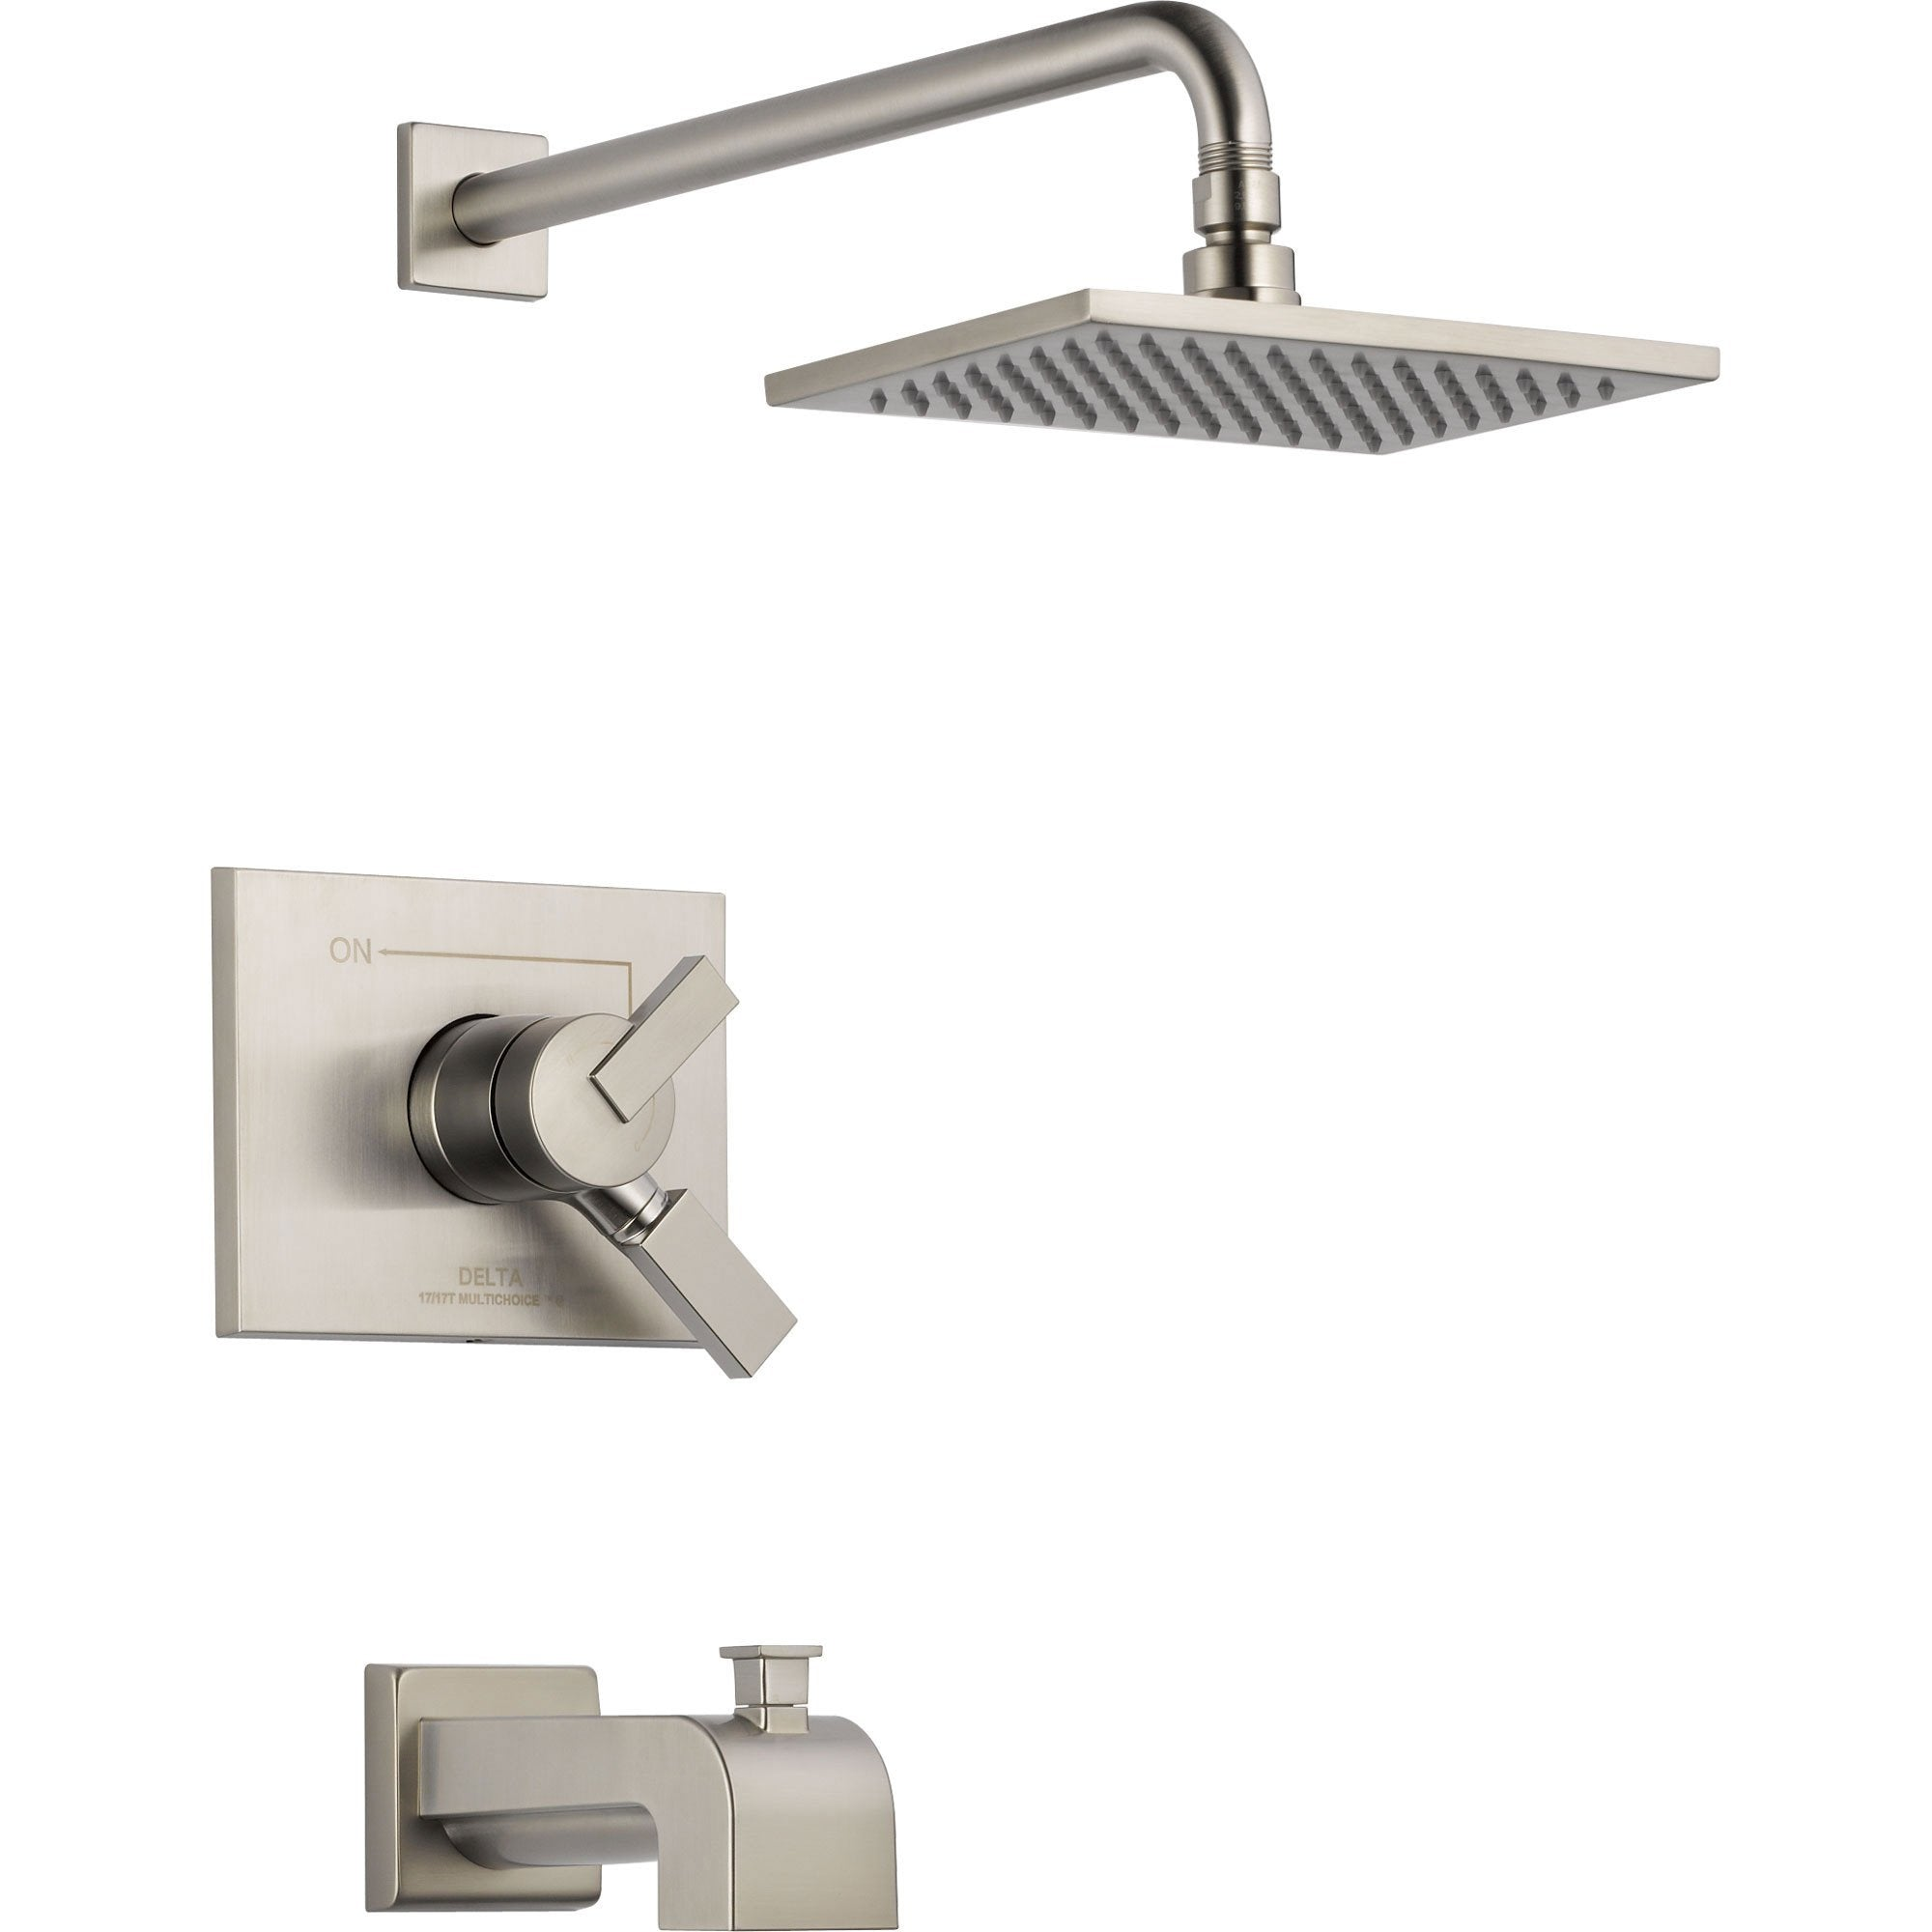 Delta Vero Stainless Steel Finish Two Control Tub and Shower with Valve D451V